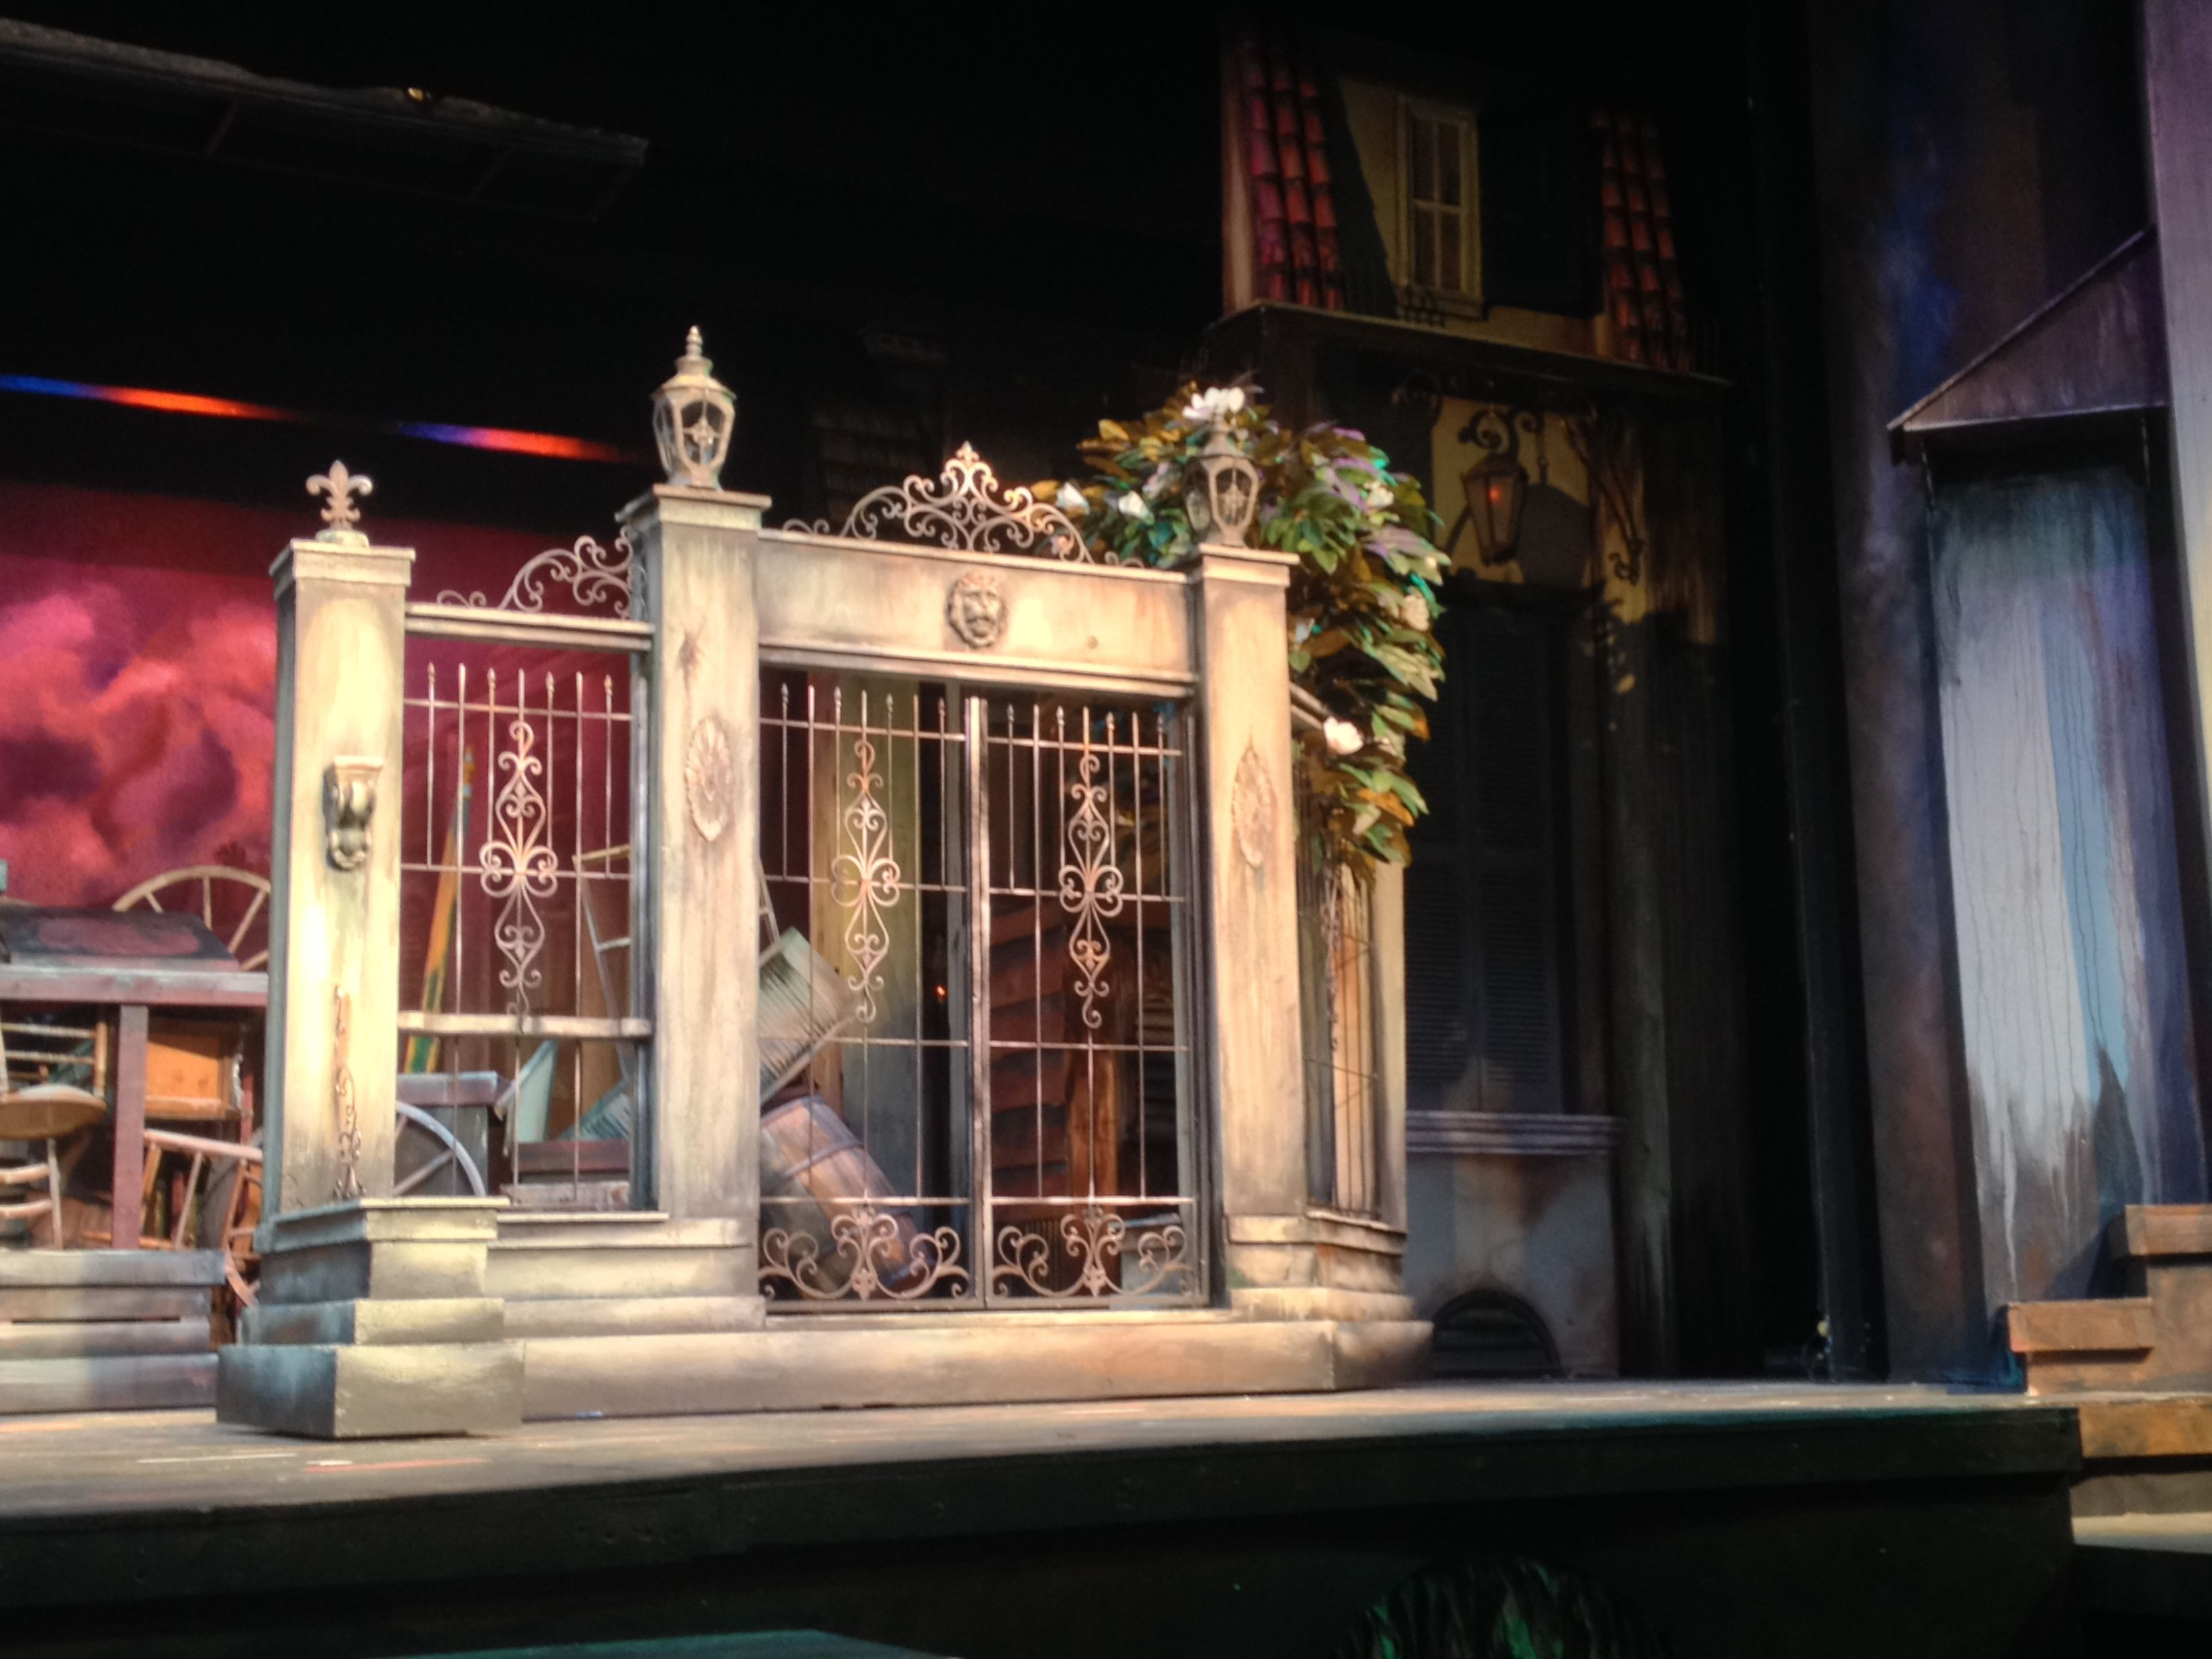 Rue Plumet from Les Miserables designed by Tim Wisgerhof